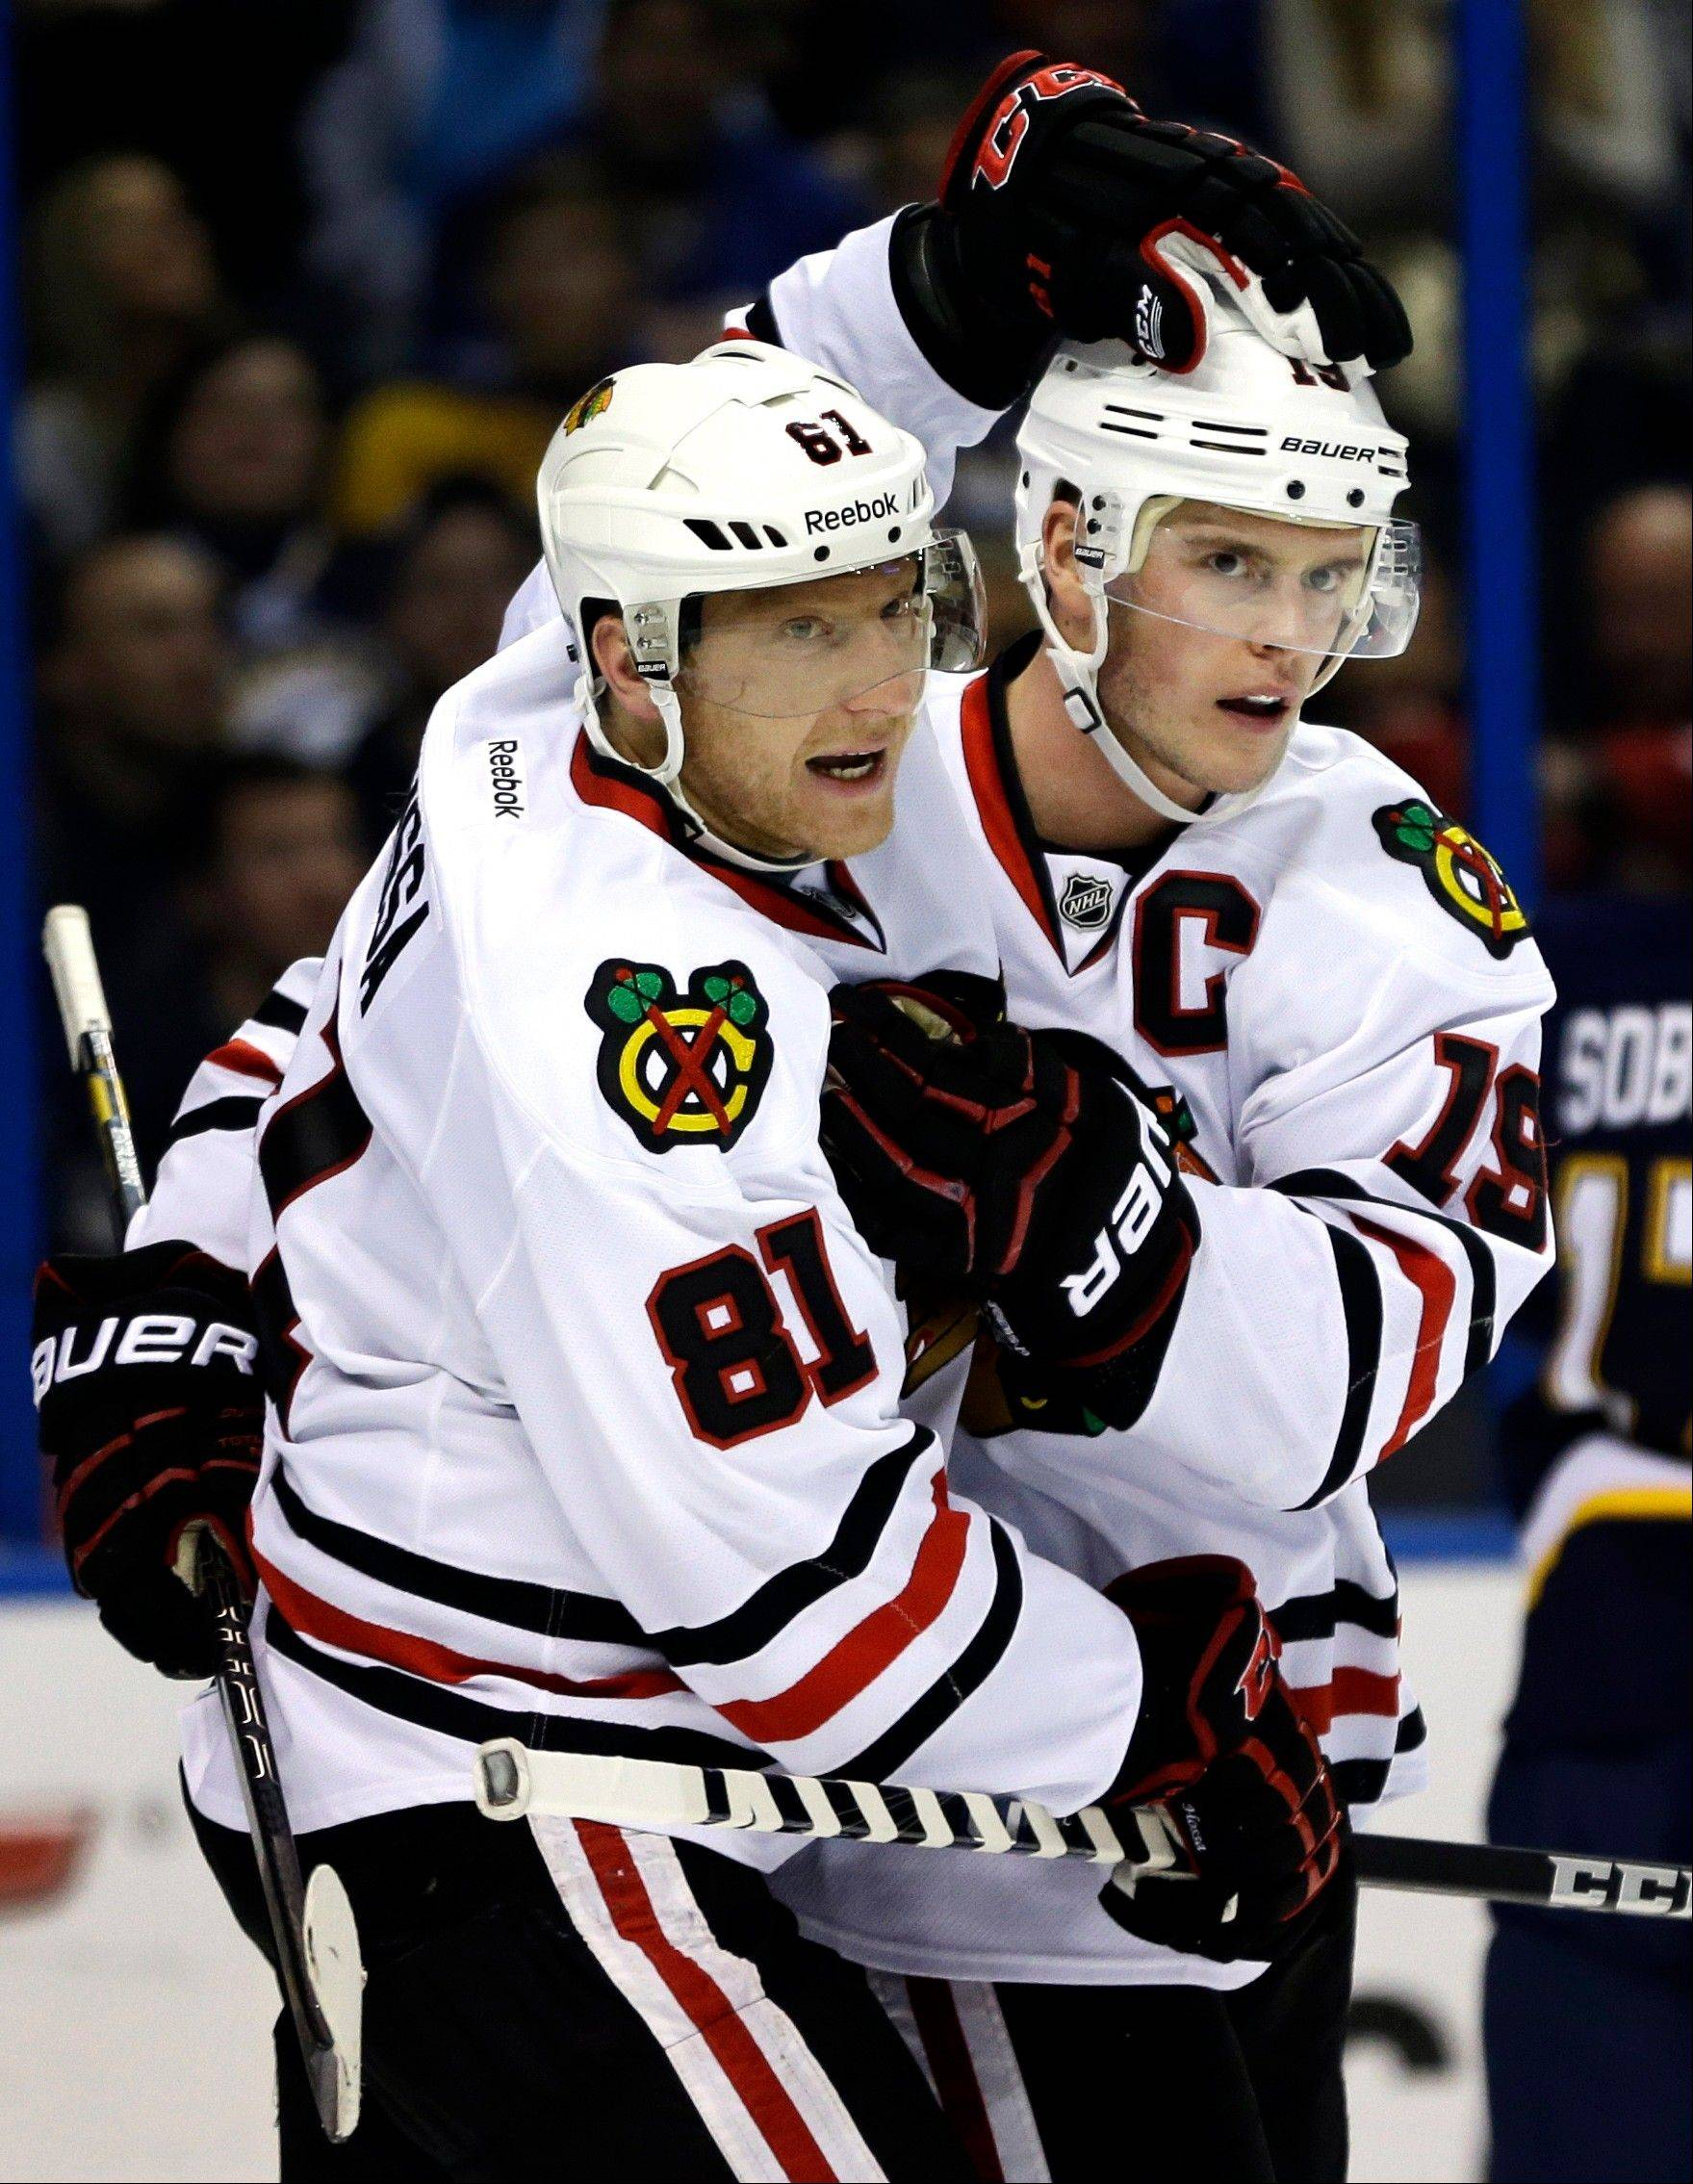 The Blackhawks' Jonathan Toews, right, is congratulated by Marian Hossa after Toews scored his second goal of the game against the St. Louis Blues on Thursday night. The Blackhawks won 3-0.